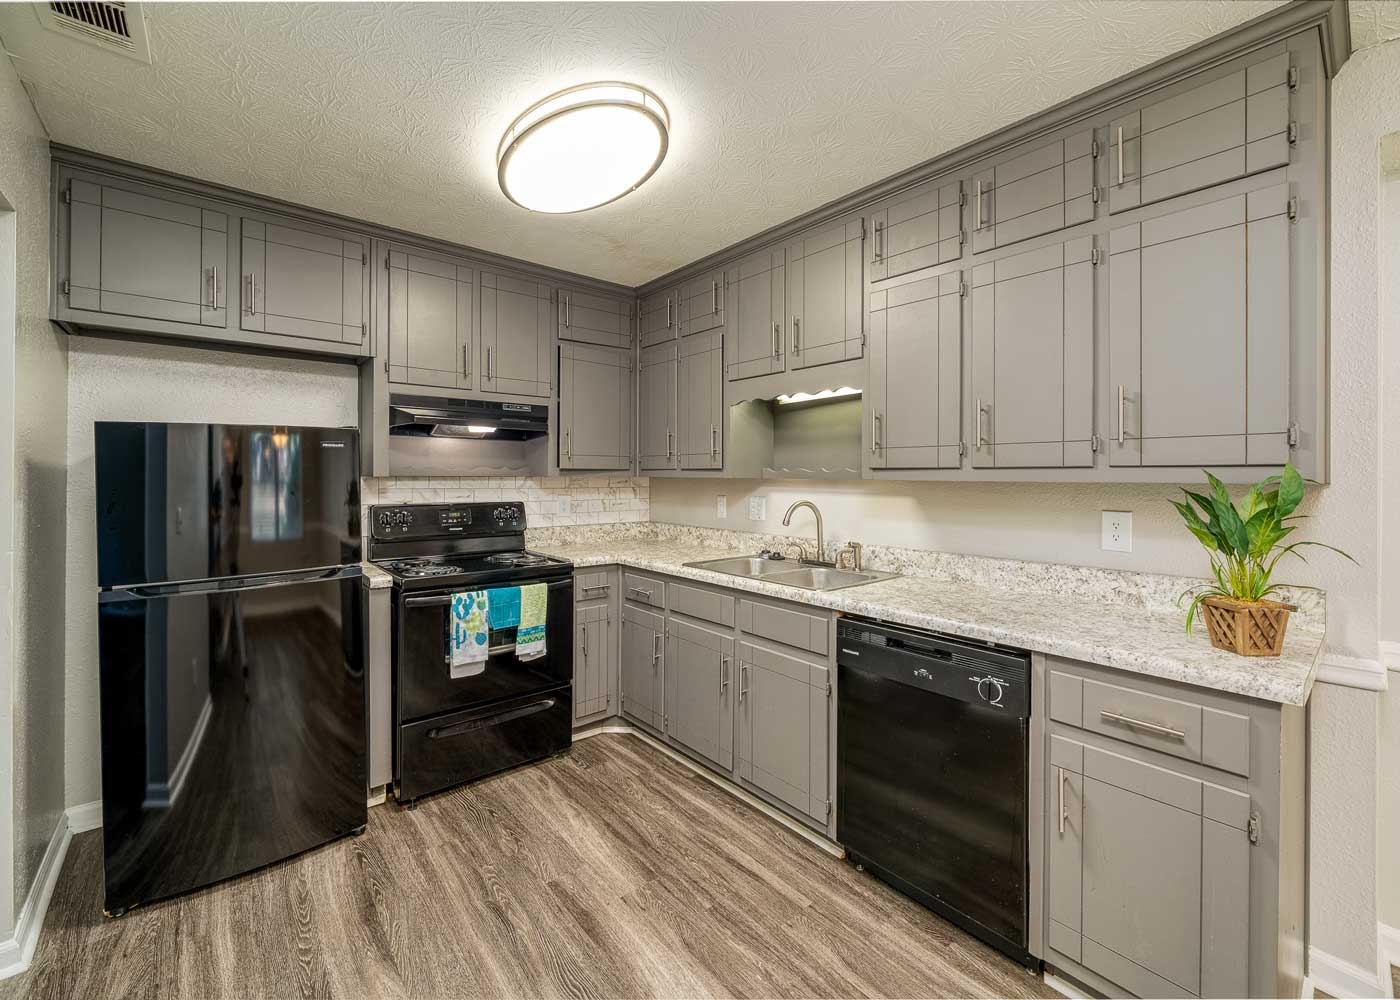 Stainless Steel Appliances at Tall Oaks Apartments and Villas in Conyers, GA